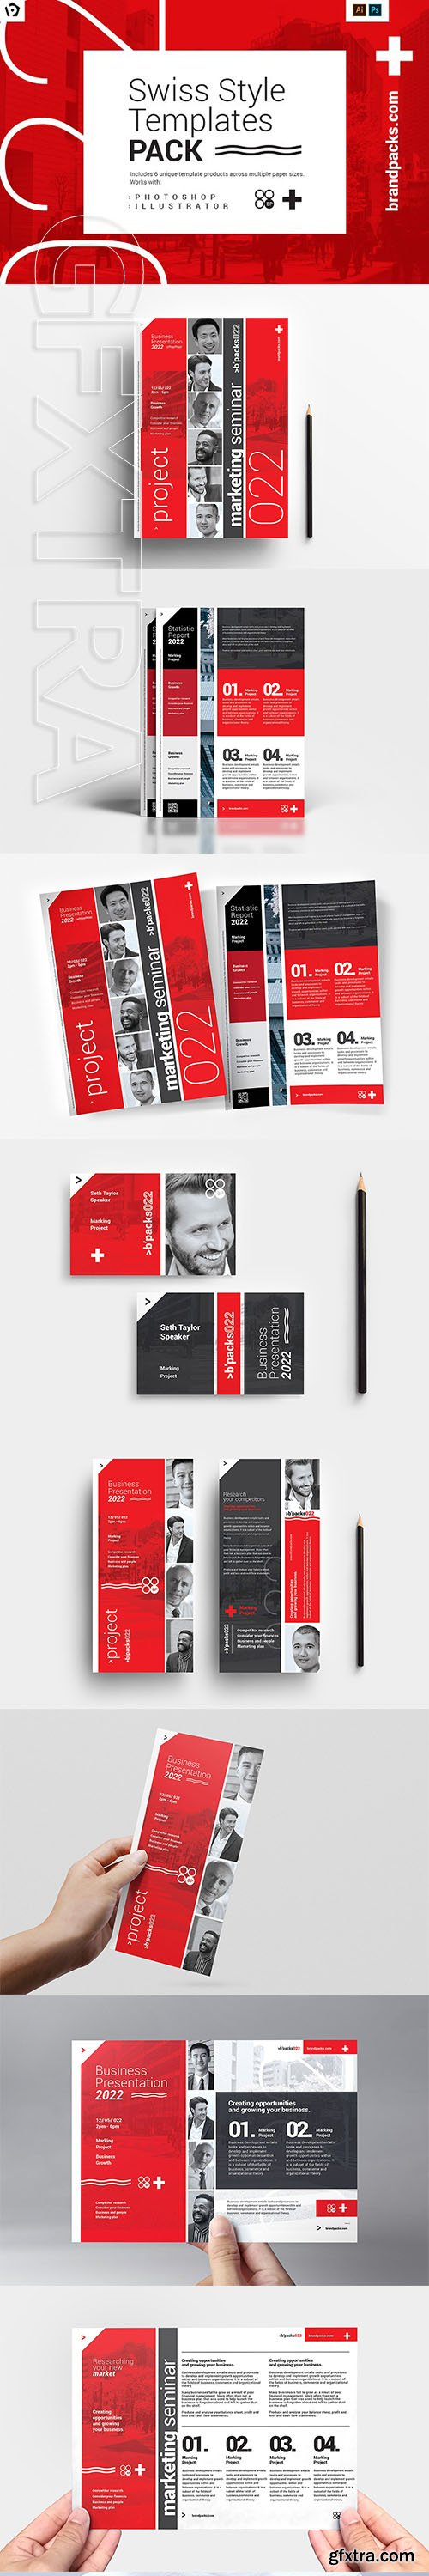 CreativeMarket - Swiss Style Templates Pack 3069403